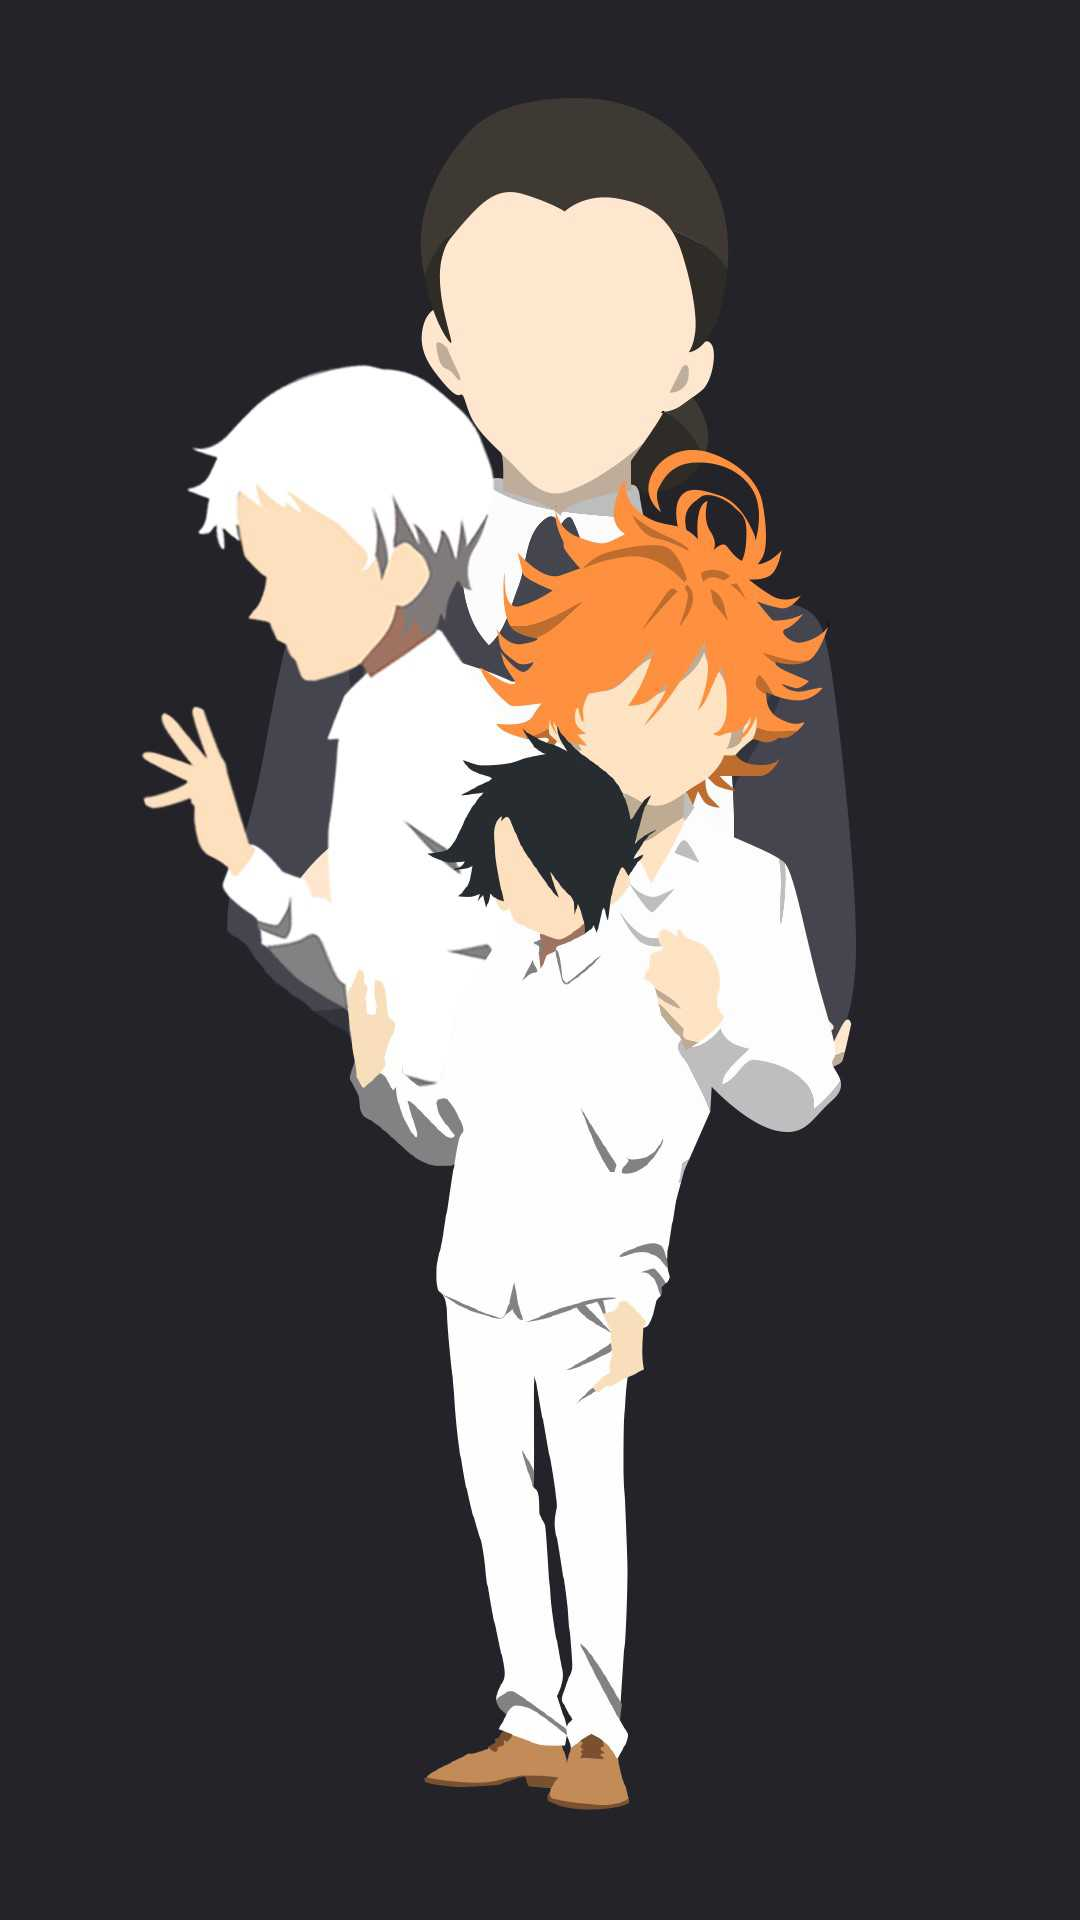 Promised Neverland Wallpaper iPhone 1